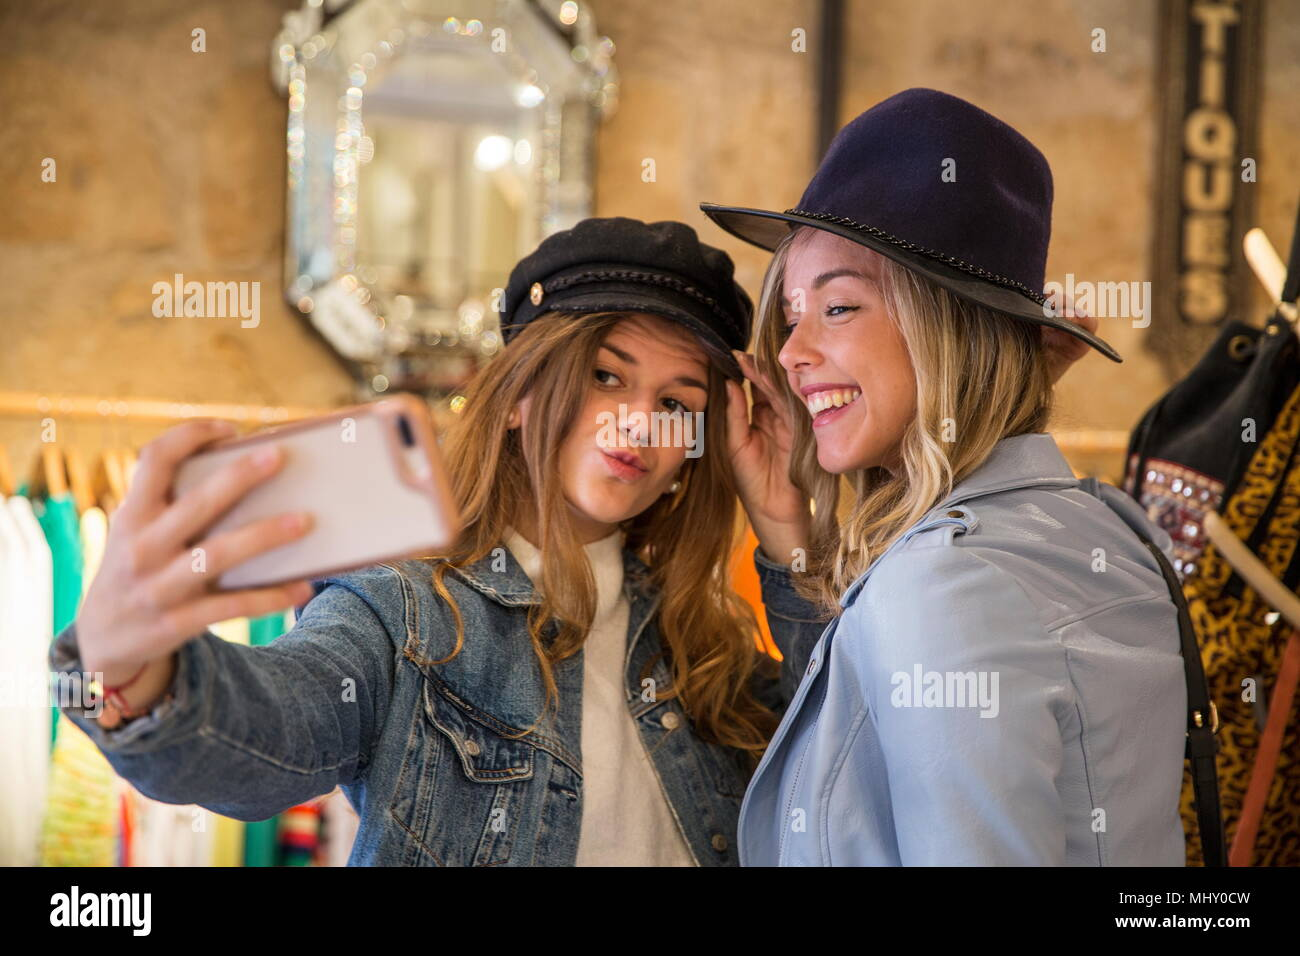 Two friends in shop, trying on hats, taking selfie, using smartphone - Stock Image